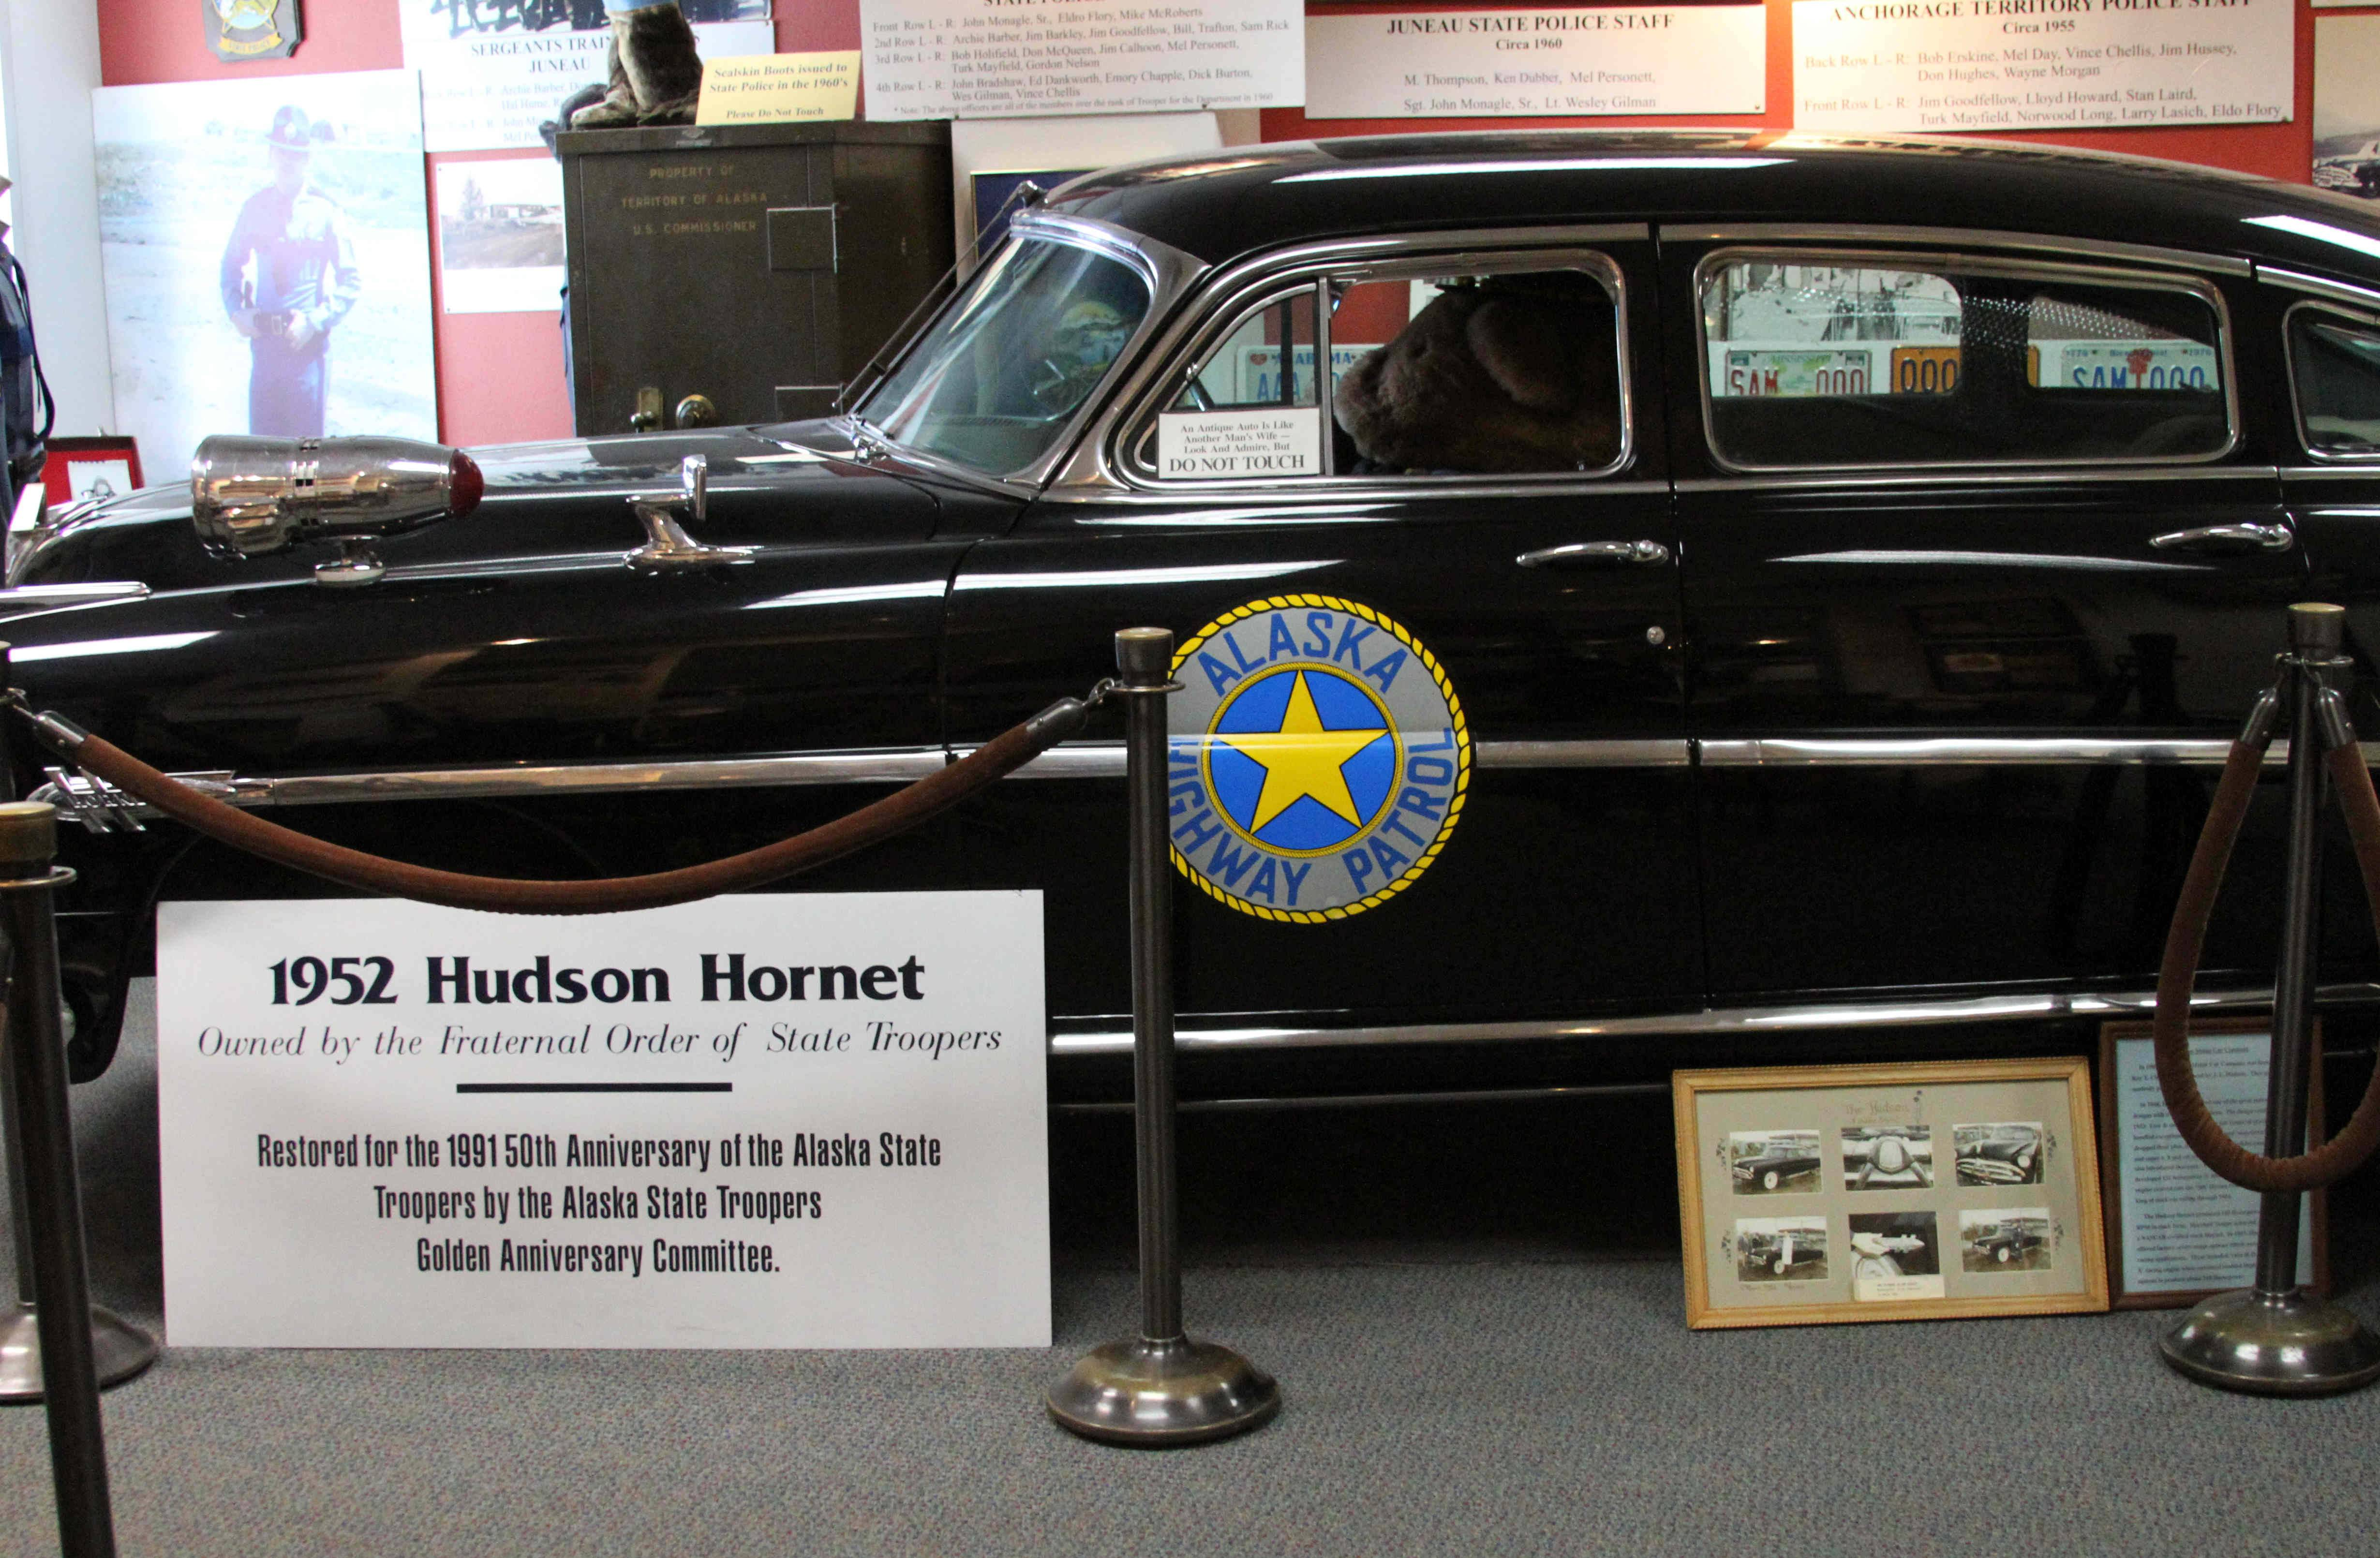 A restored 1952 Hudson Hornet is on display at the State Trooper Museum in downtown Anchorage, Alaska. The free museum offers a history of law enforcement in Alaska dating back to territorial days.